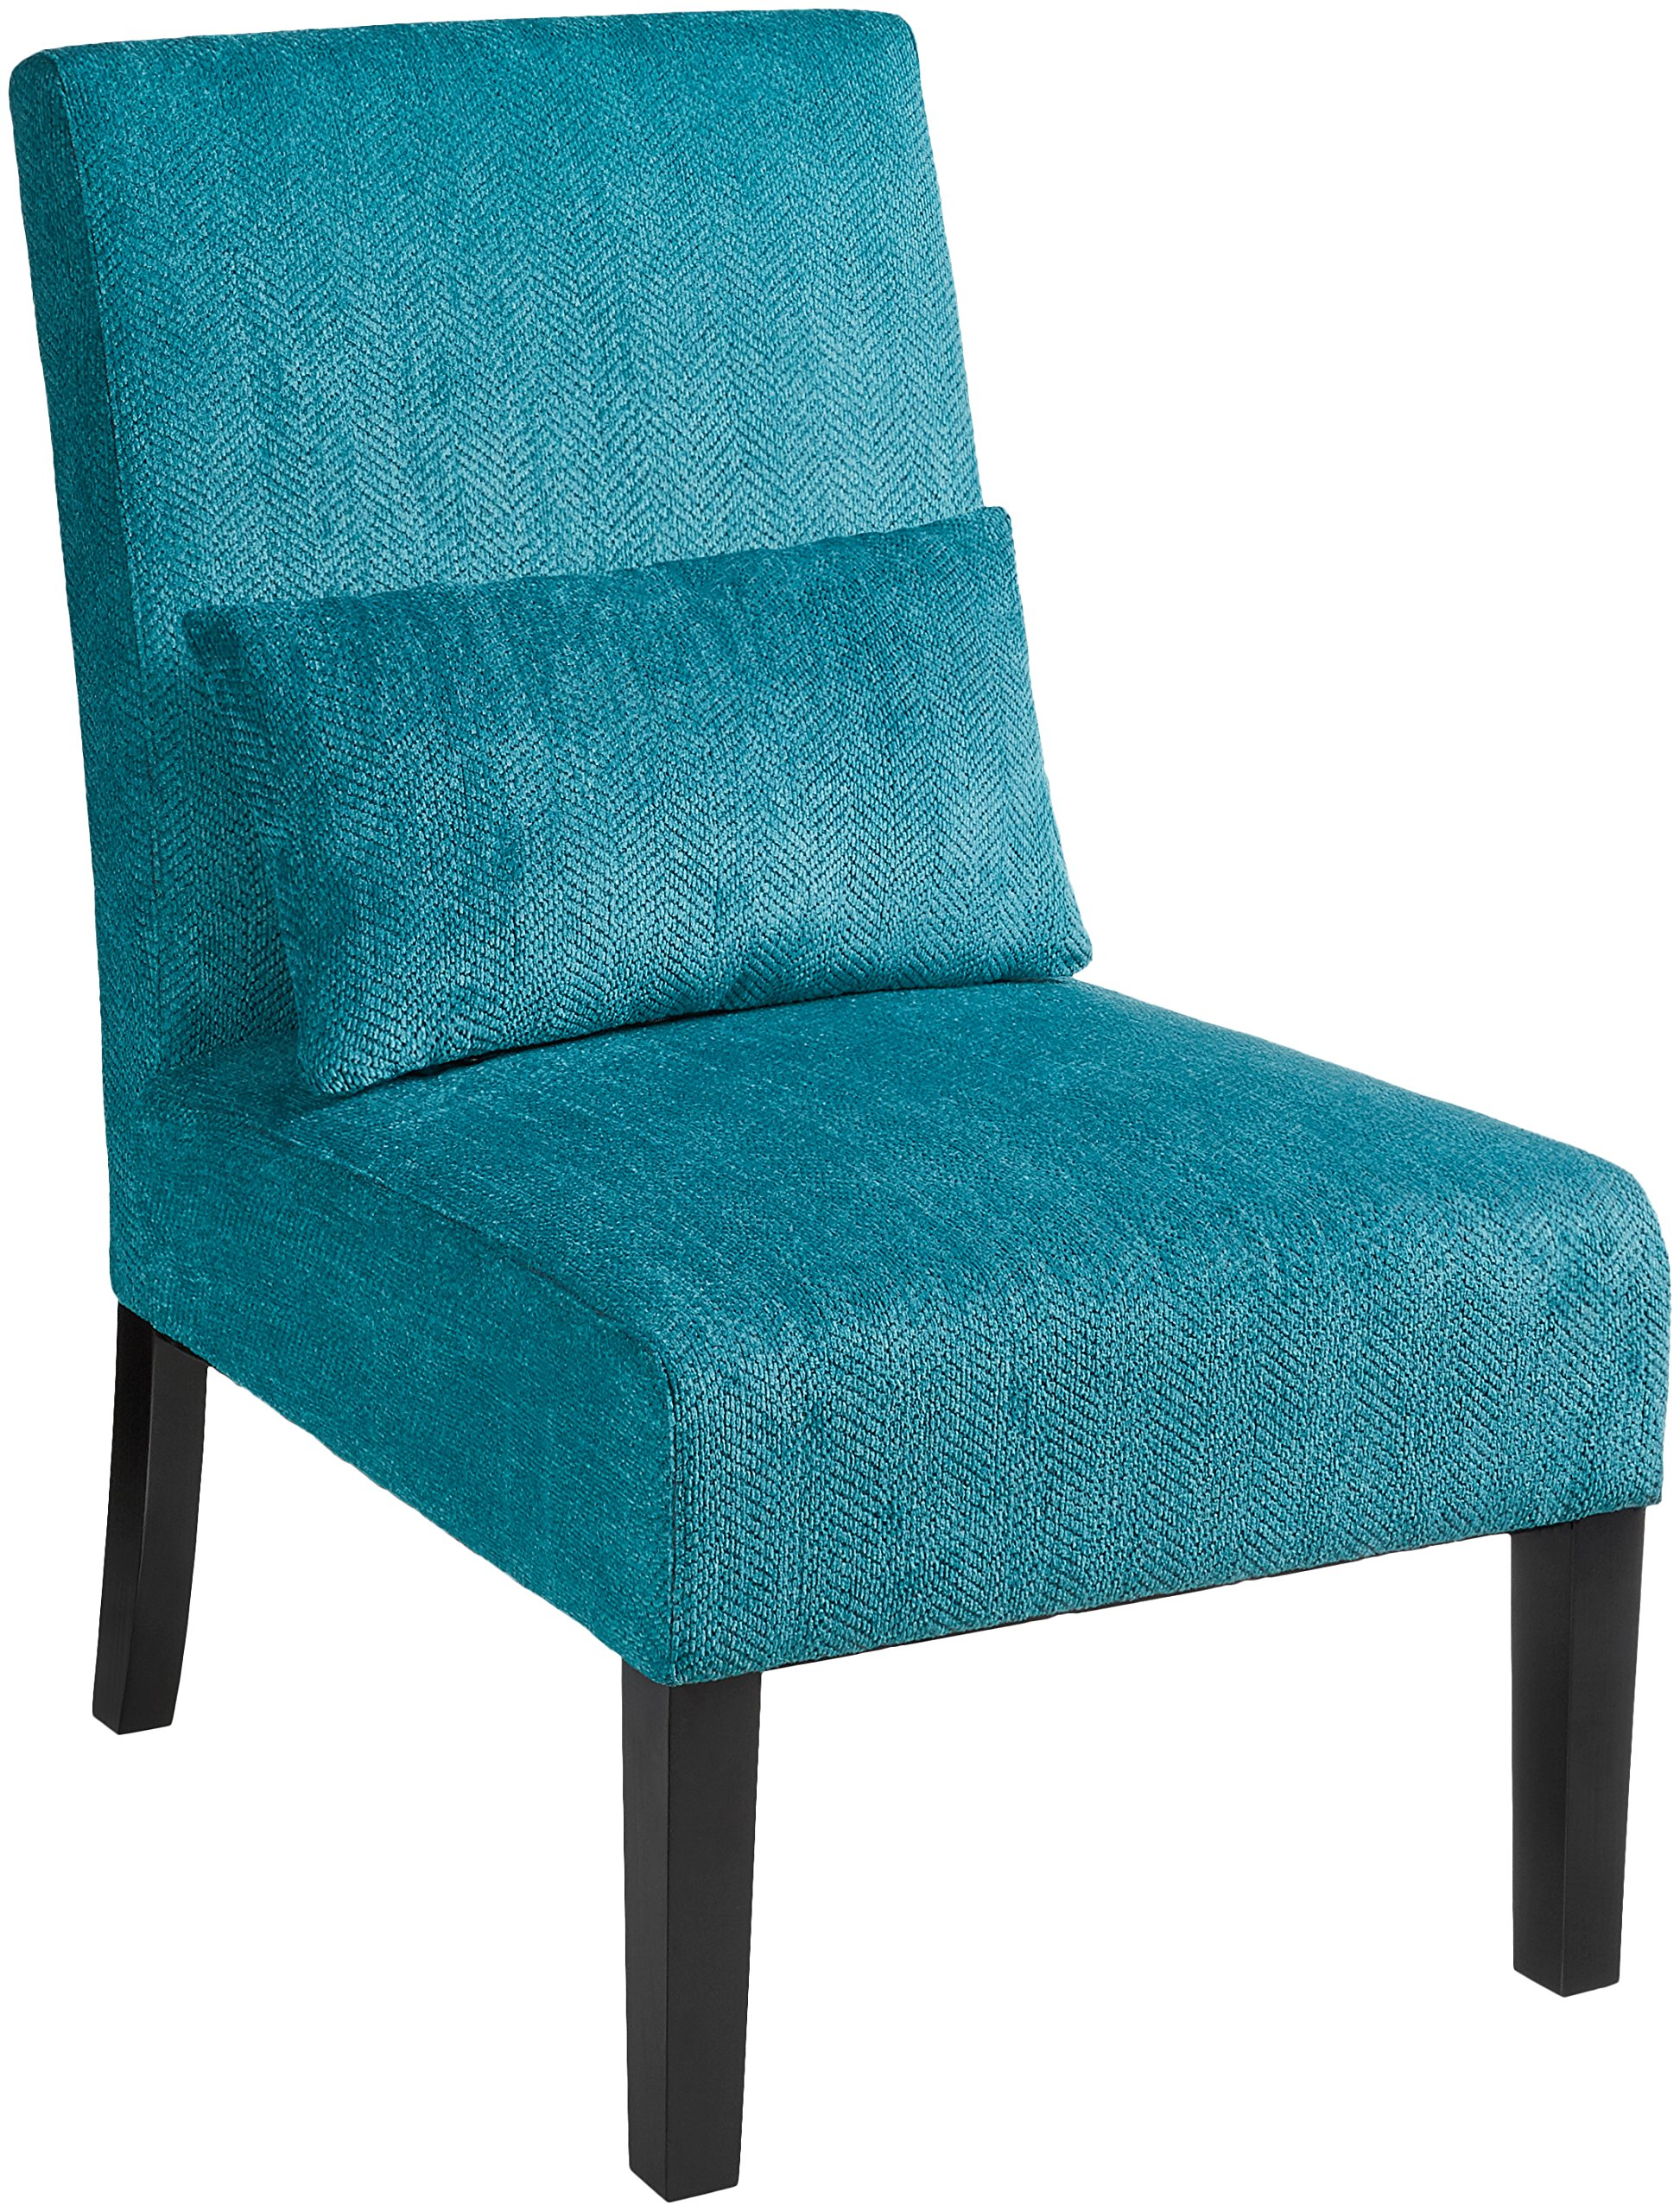 Roundhill Furniture Pisano Teal Blue Fabric Armless Contemporary Accent Chair with Kidney Pillow, Single - This durable chair is crafted with solid wood legs and a chenille fiber weave, which means it is built to withstand extensive use through time. Ready to Assemble The chair comes with a matching fabric accent pillow to complete the look. The sturdy legs is coated with deep espresso finish. It's solidly made of wood frame which offer a solid foundation Upholstery Color: Teal Blue. The seat and back are padded for great comfortable feeling. The unique graffiti design is a nice touch of modern contemporary appeal - living-room-furniture, living-room, accent-chairs - A1bPh7lD90L -